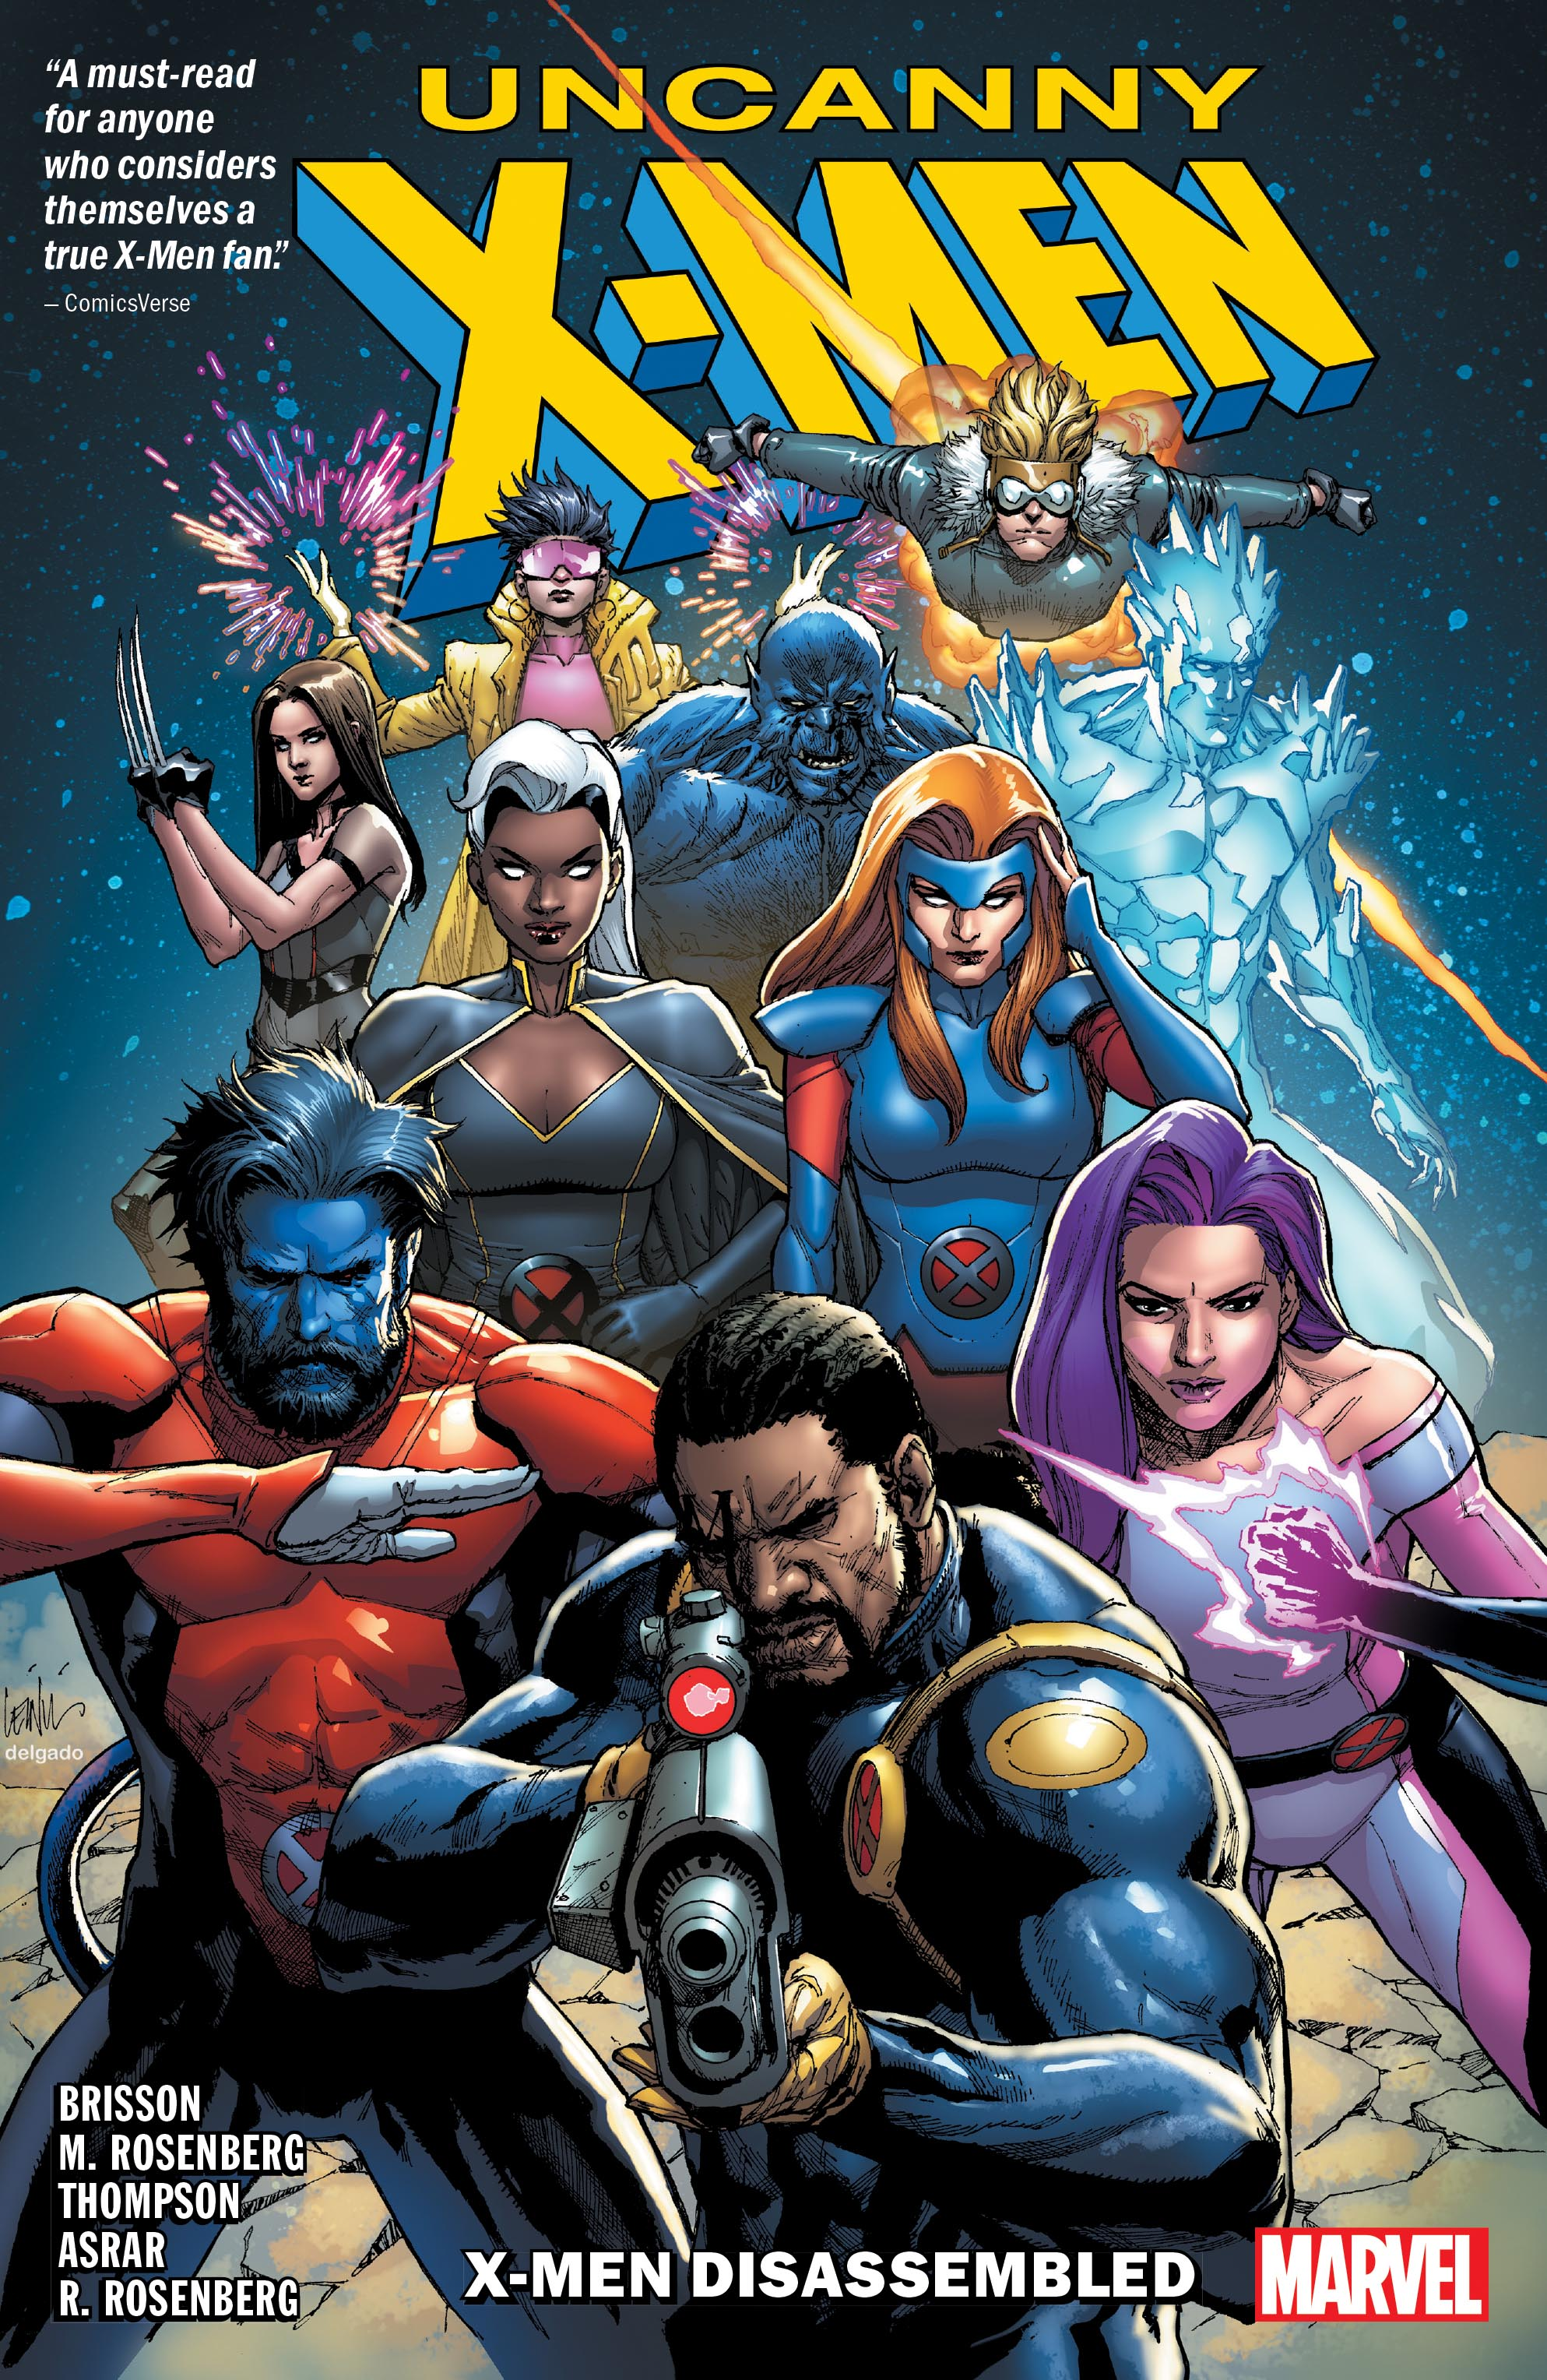 UNCANNY X-MEN: X-MEN DISASSEMBLED TPB (Trade Paperback)